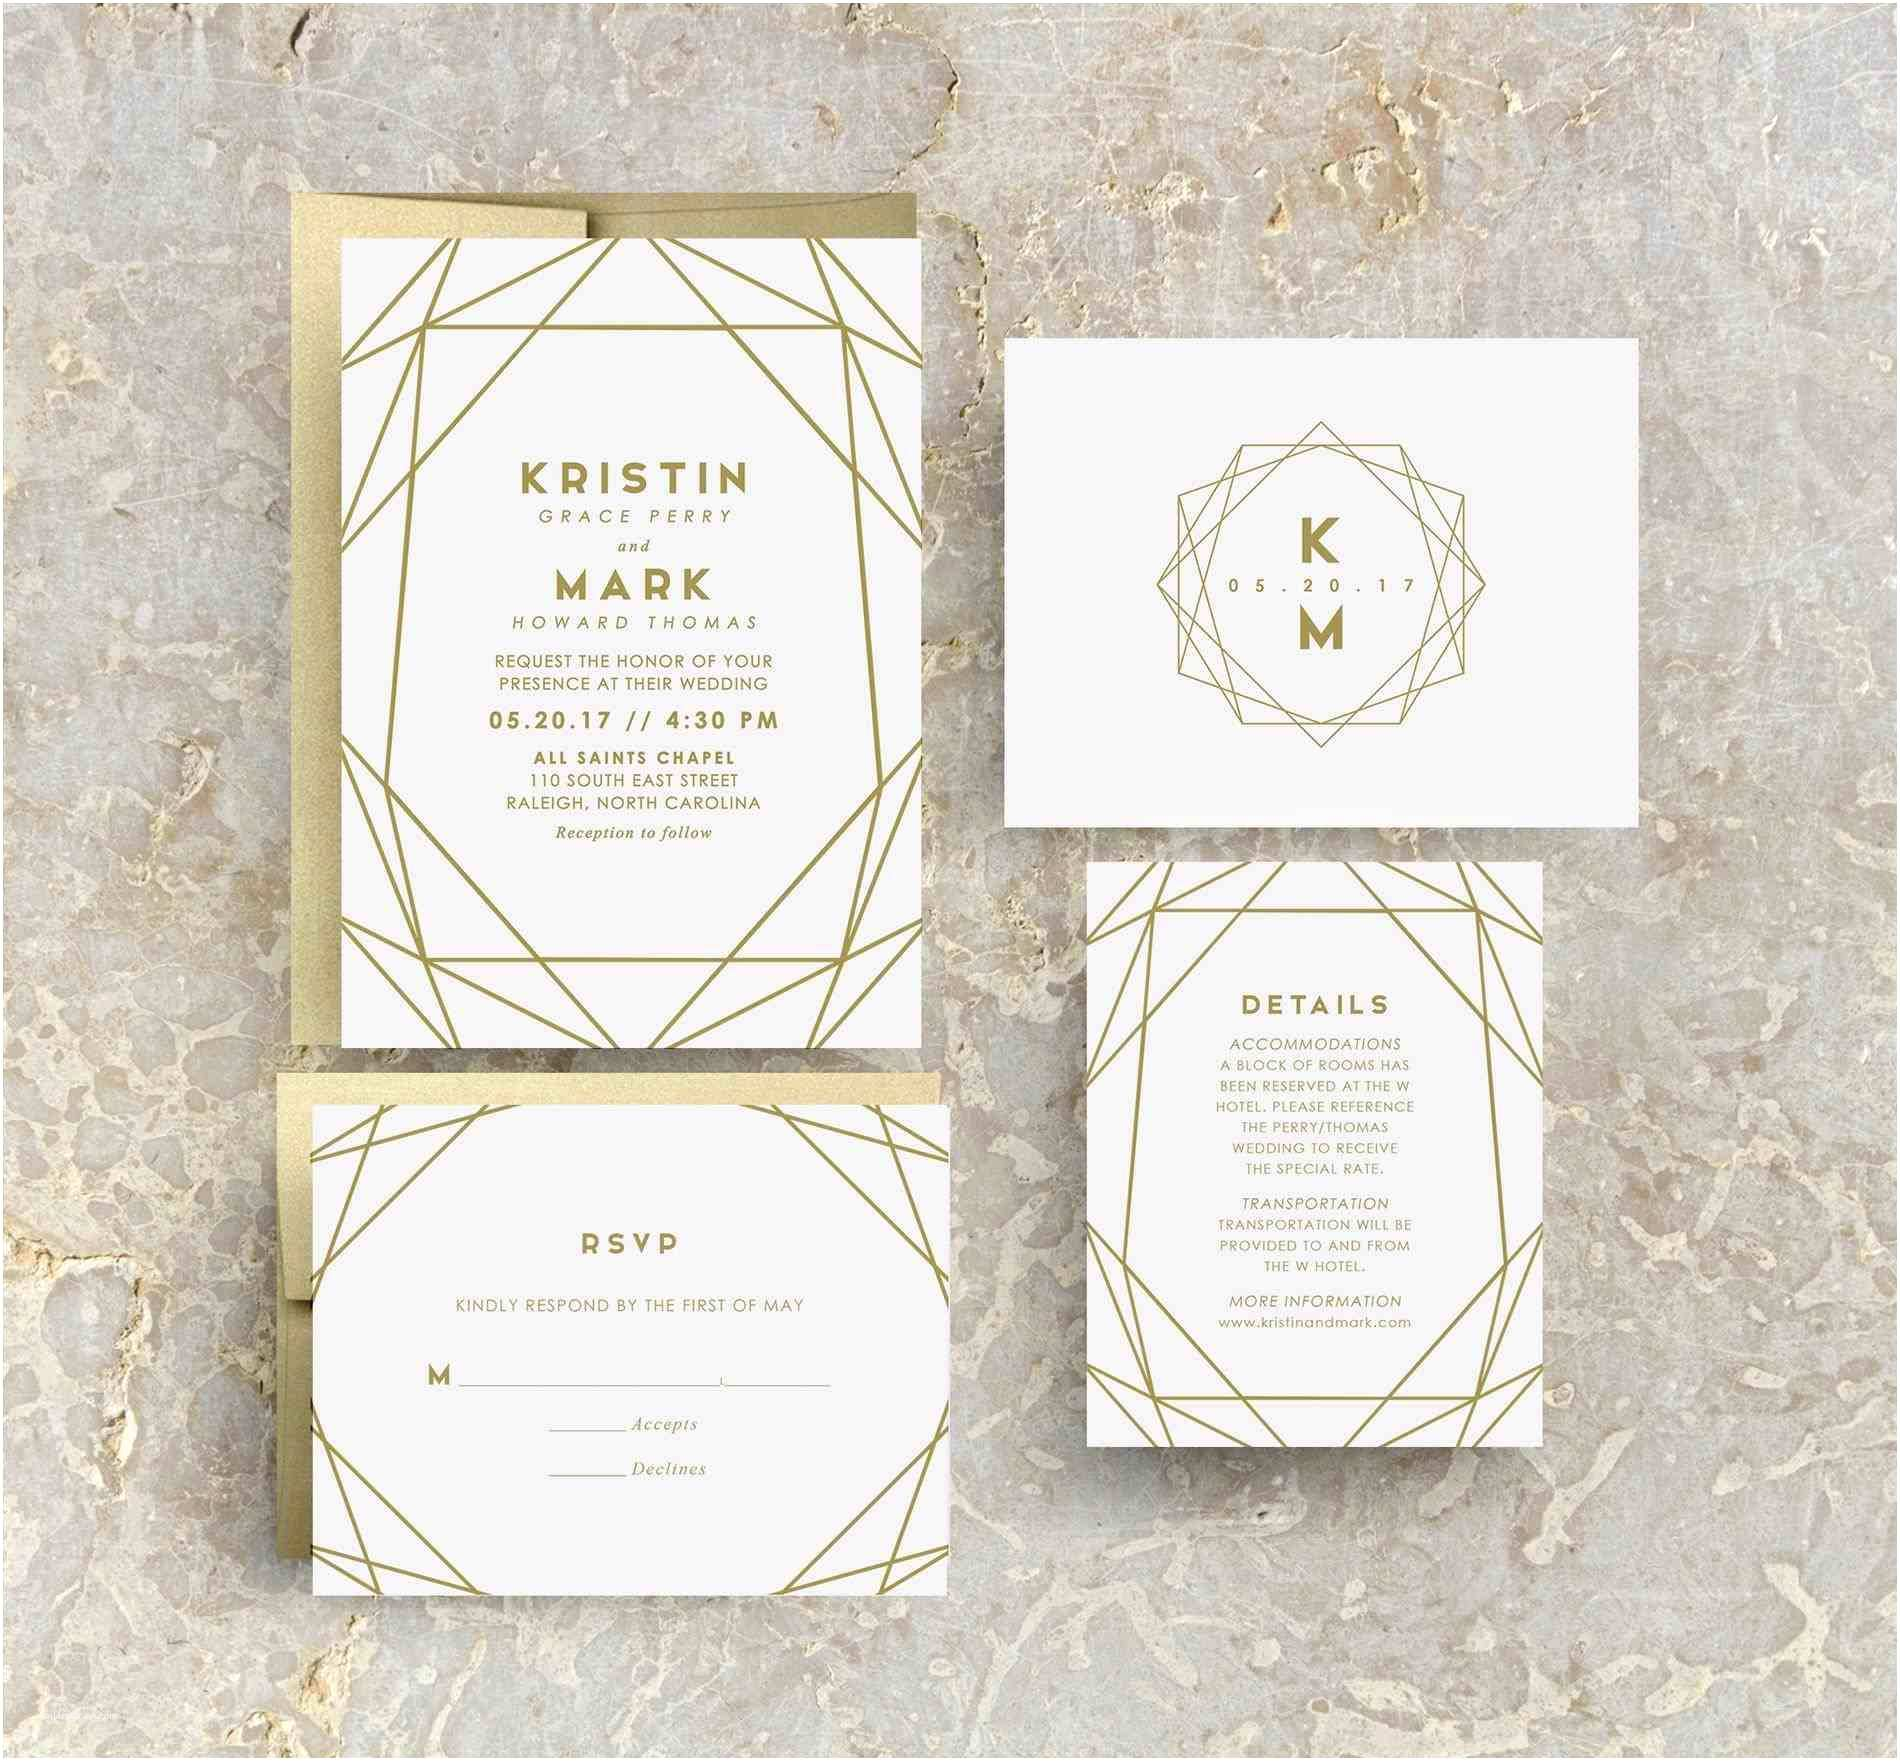 Cheap Rustic Country Wedding Invitations Background Vizio Invitation Paper Ilcasarosf Invitation